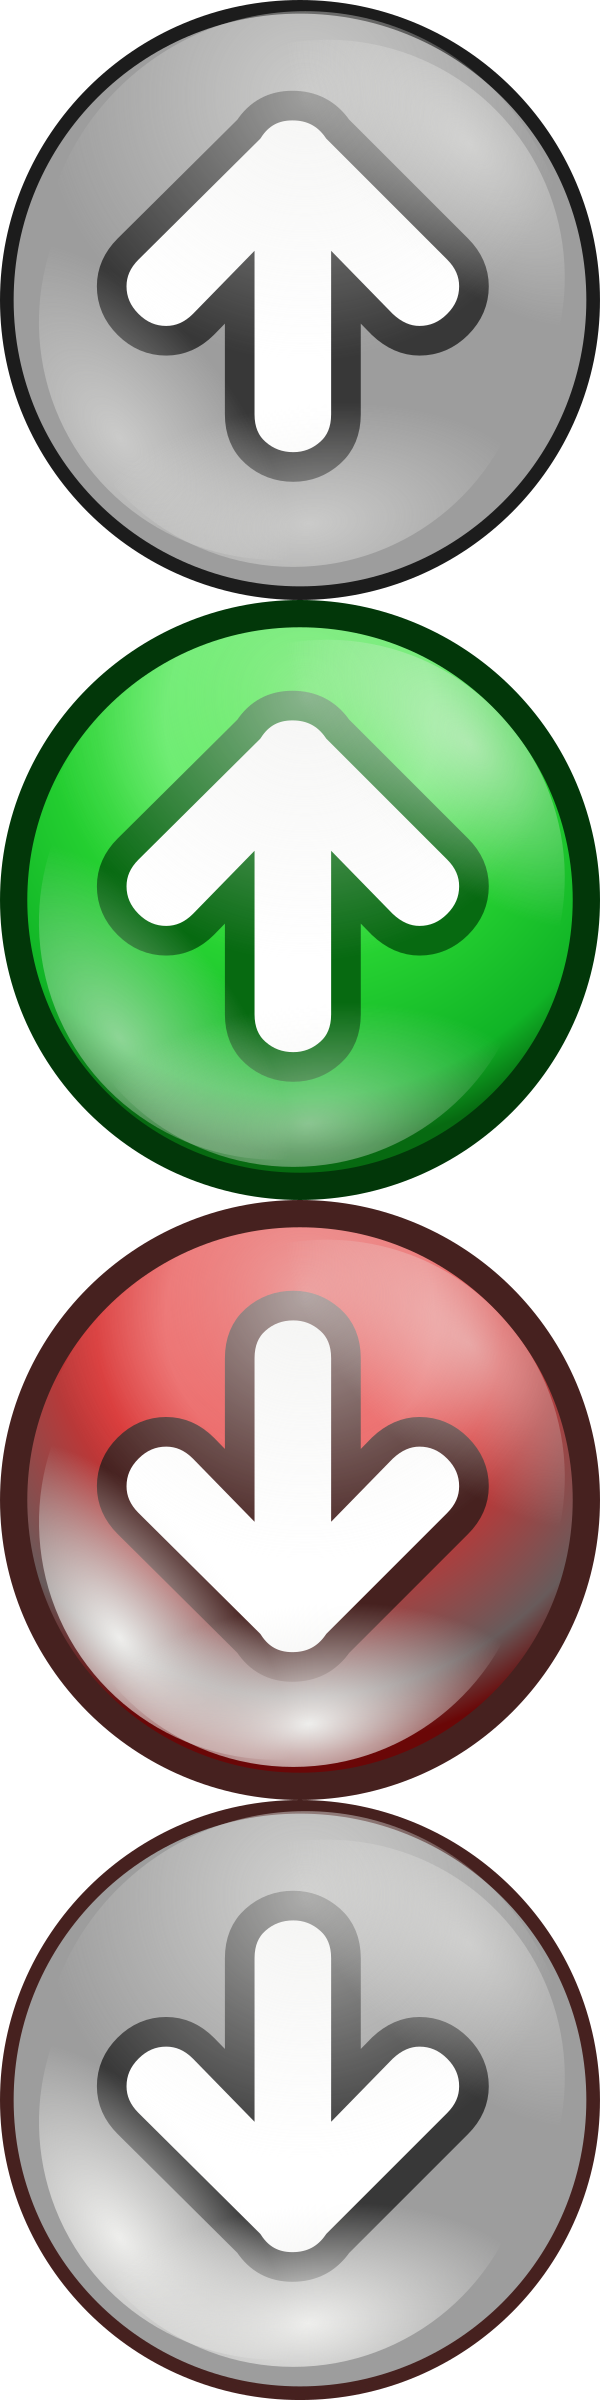 Shiny green/red voting arrows by wayfarer_boy